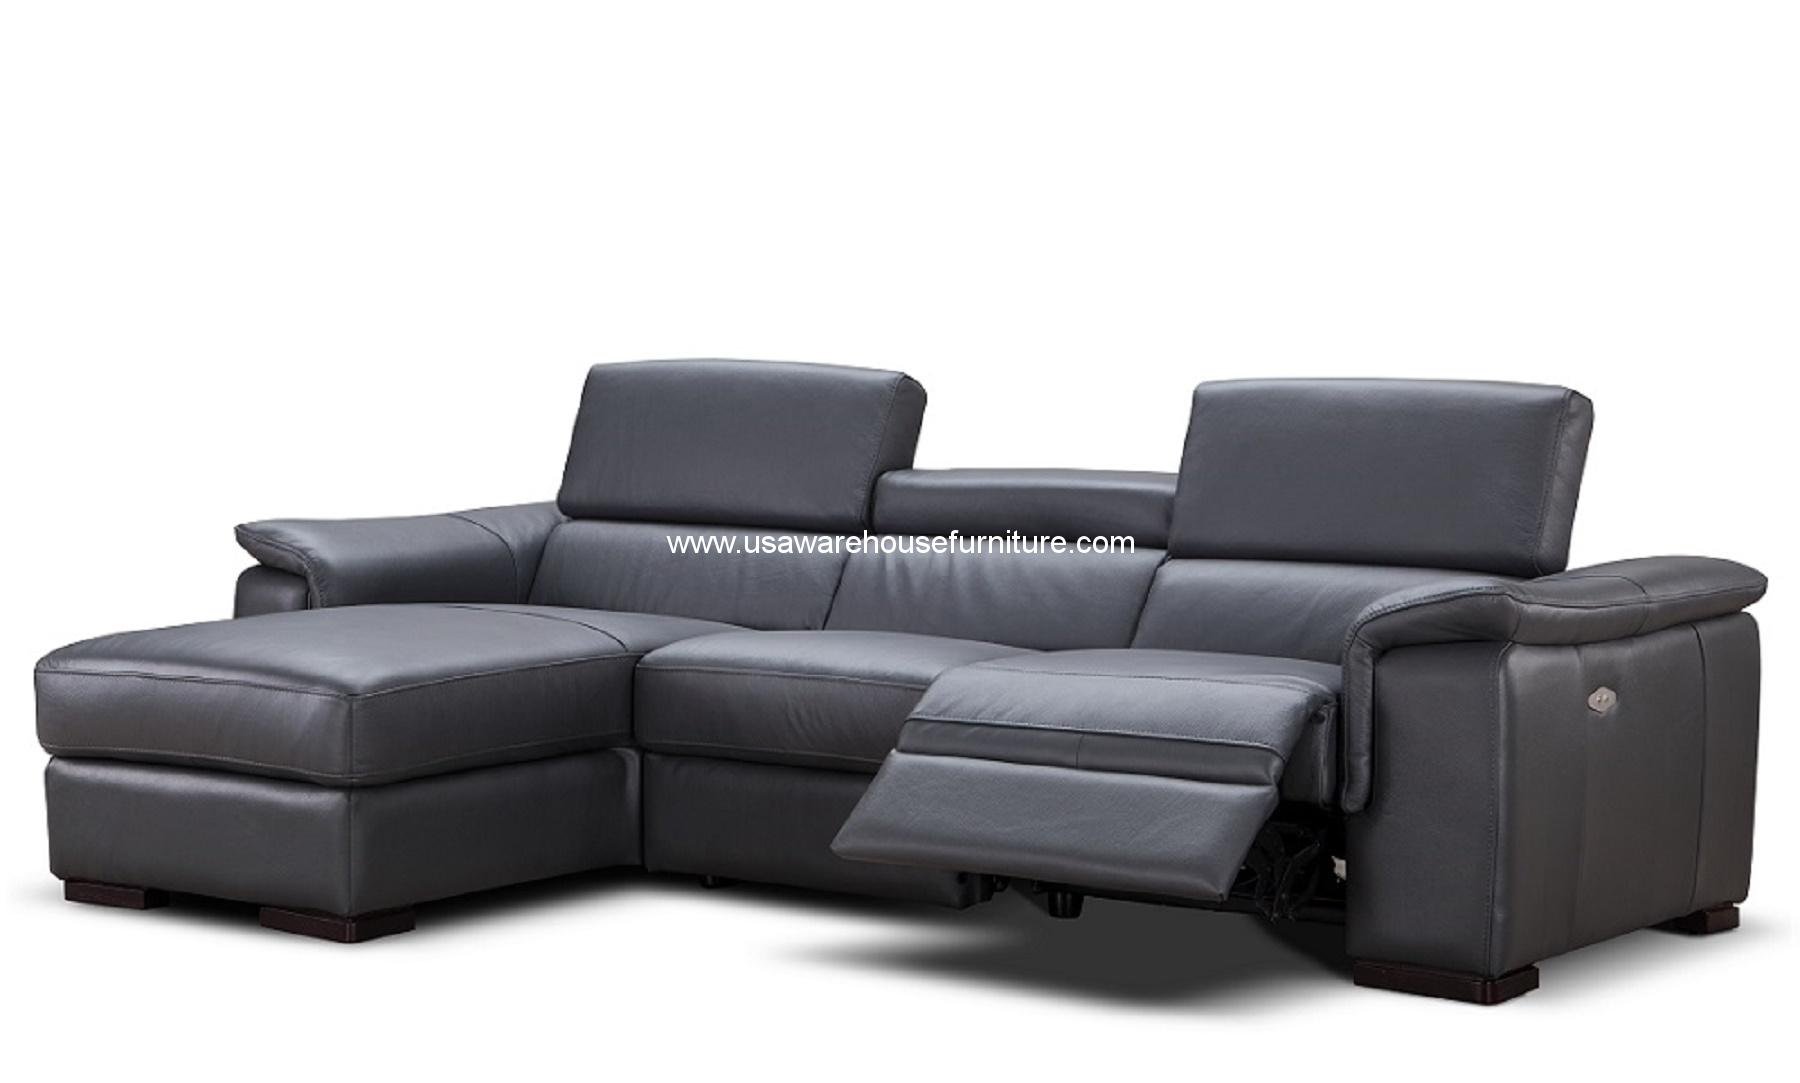 alba premium leather power reclining sectional usa warehouse furniture. Black Bedroom Furniture Sets. Home Design Ideas